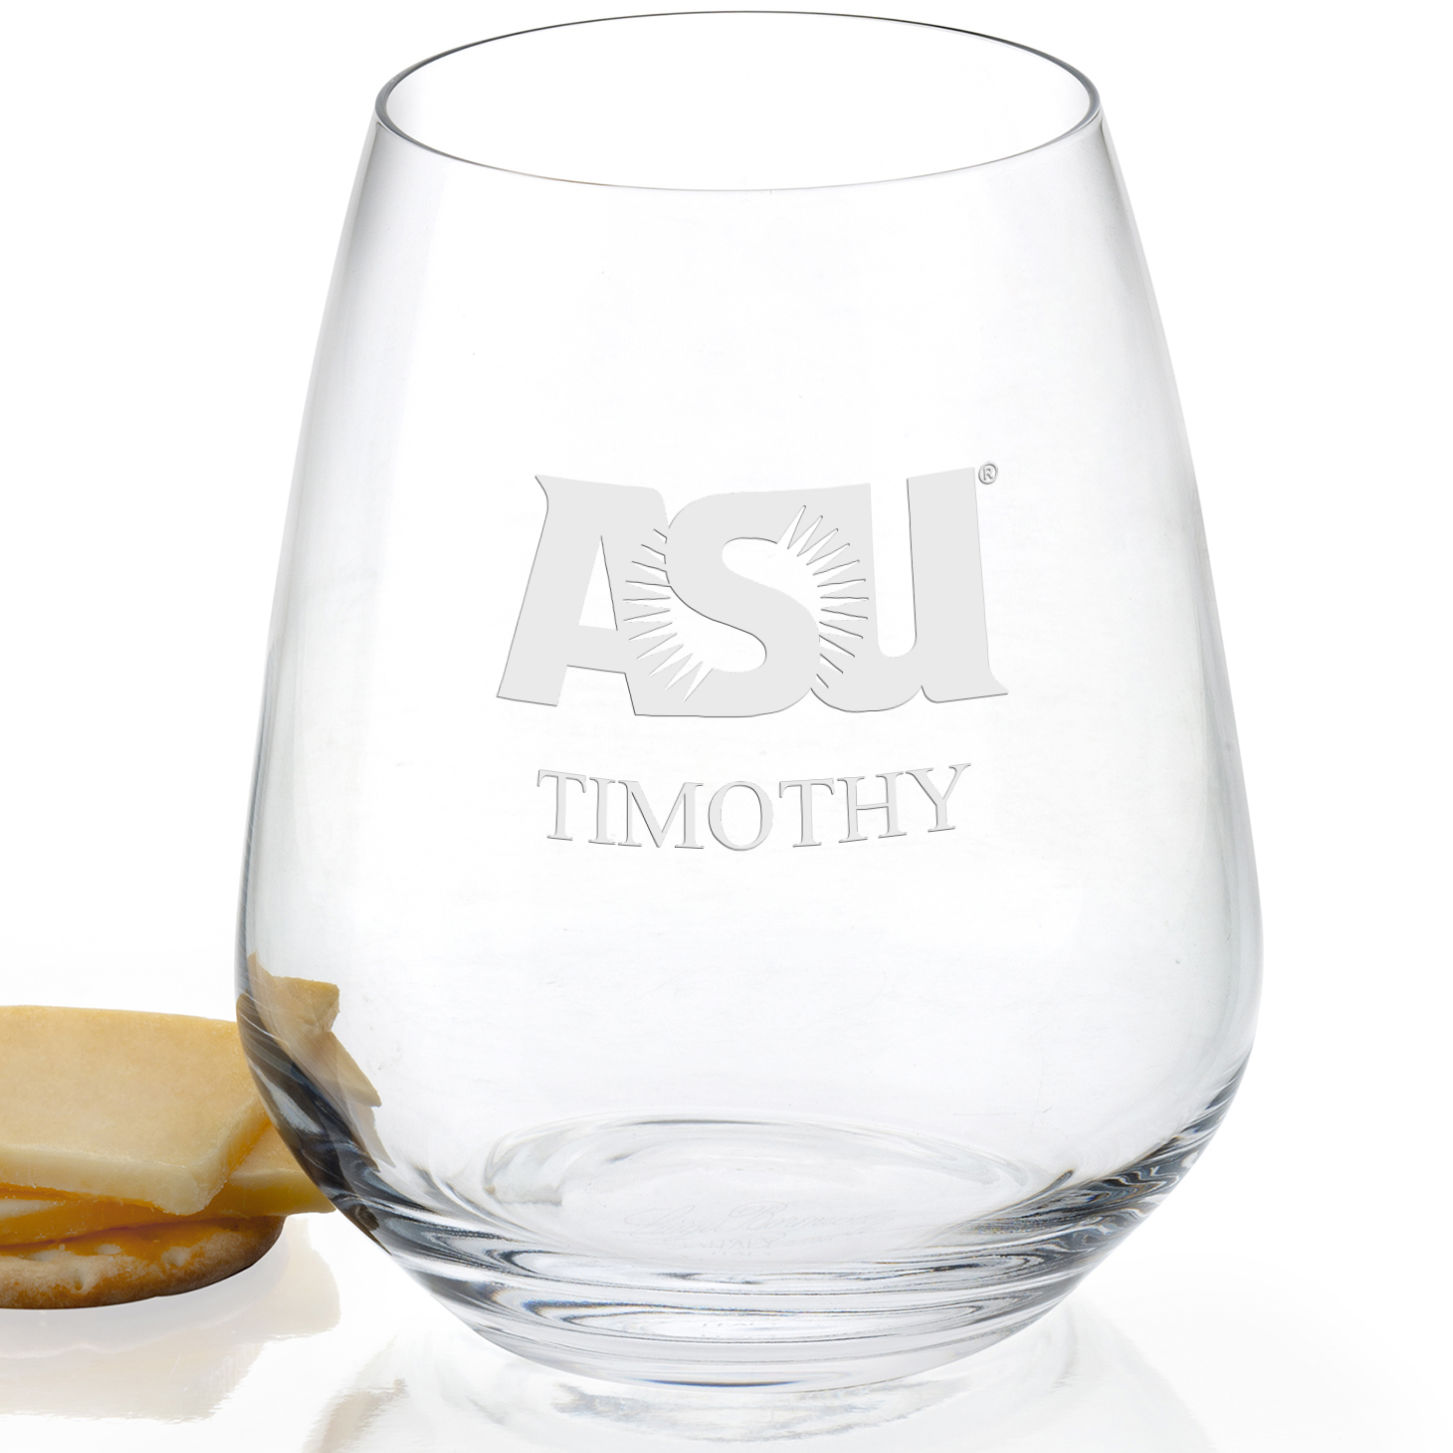 Arizona State Stemless Wine Glasses - Set of 4